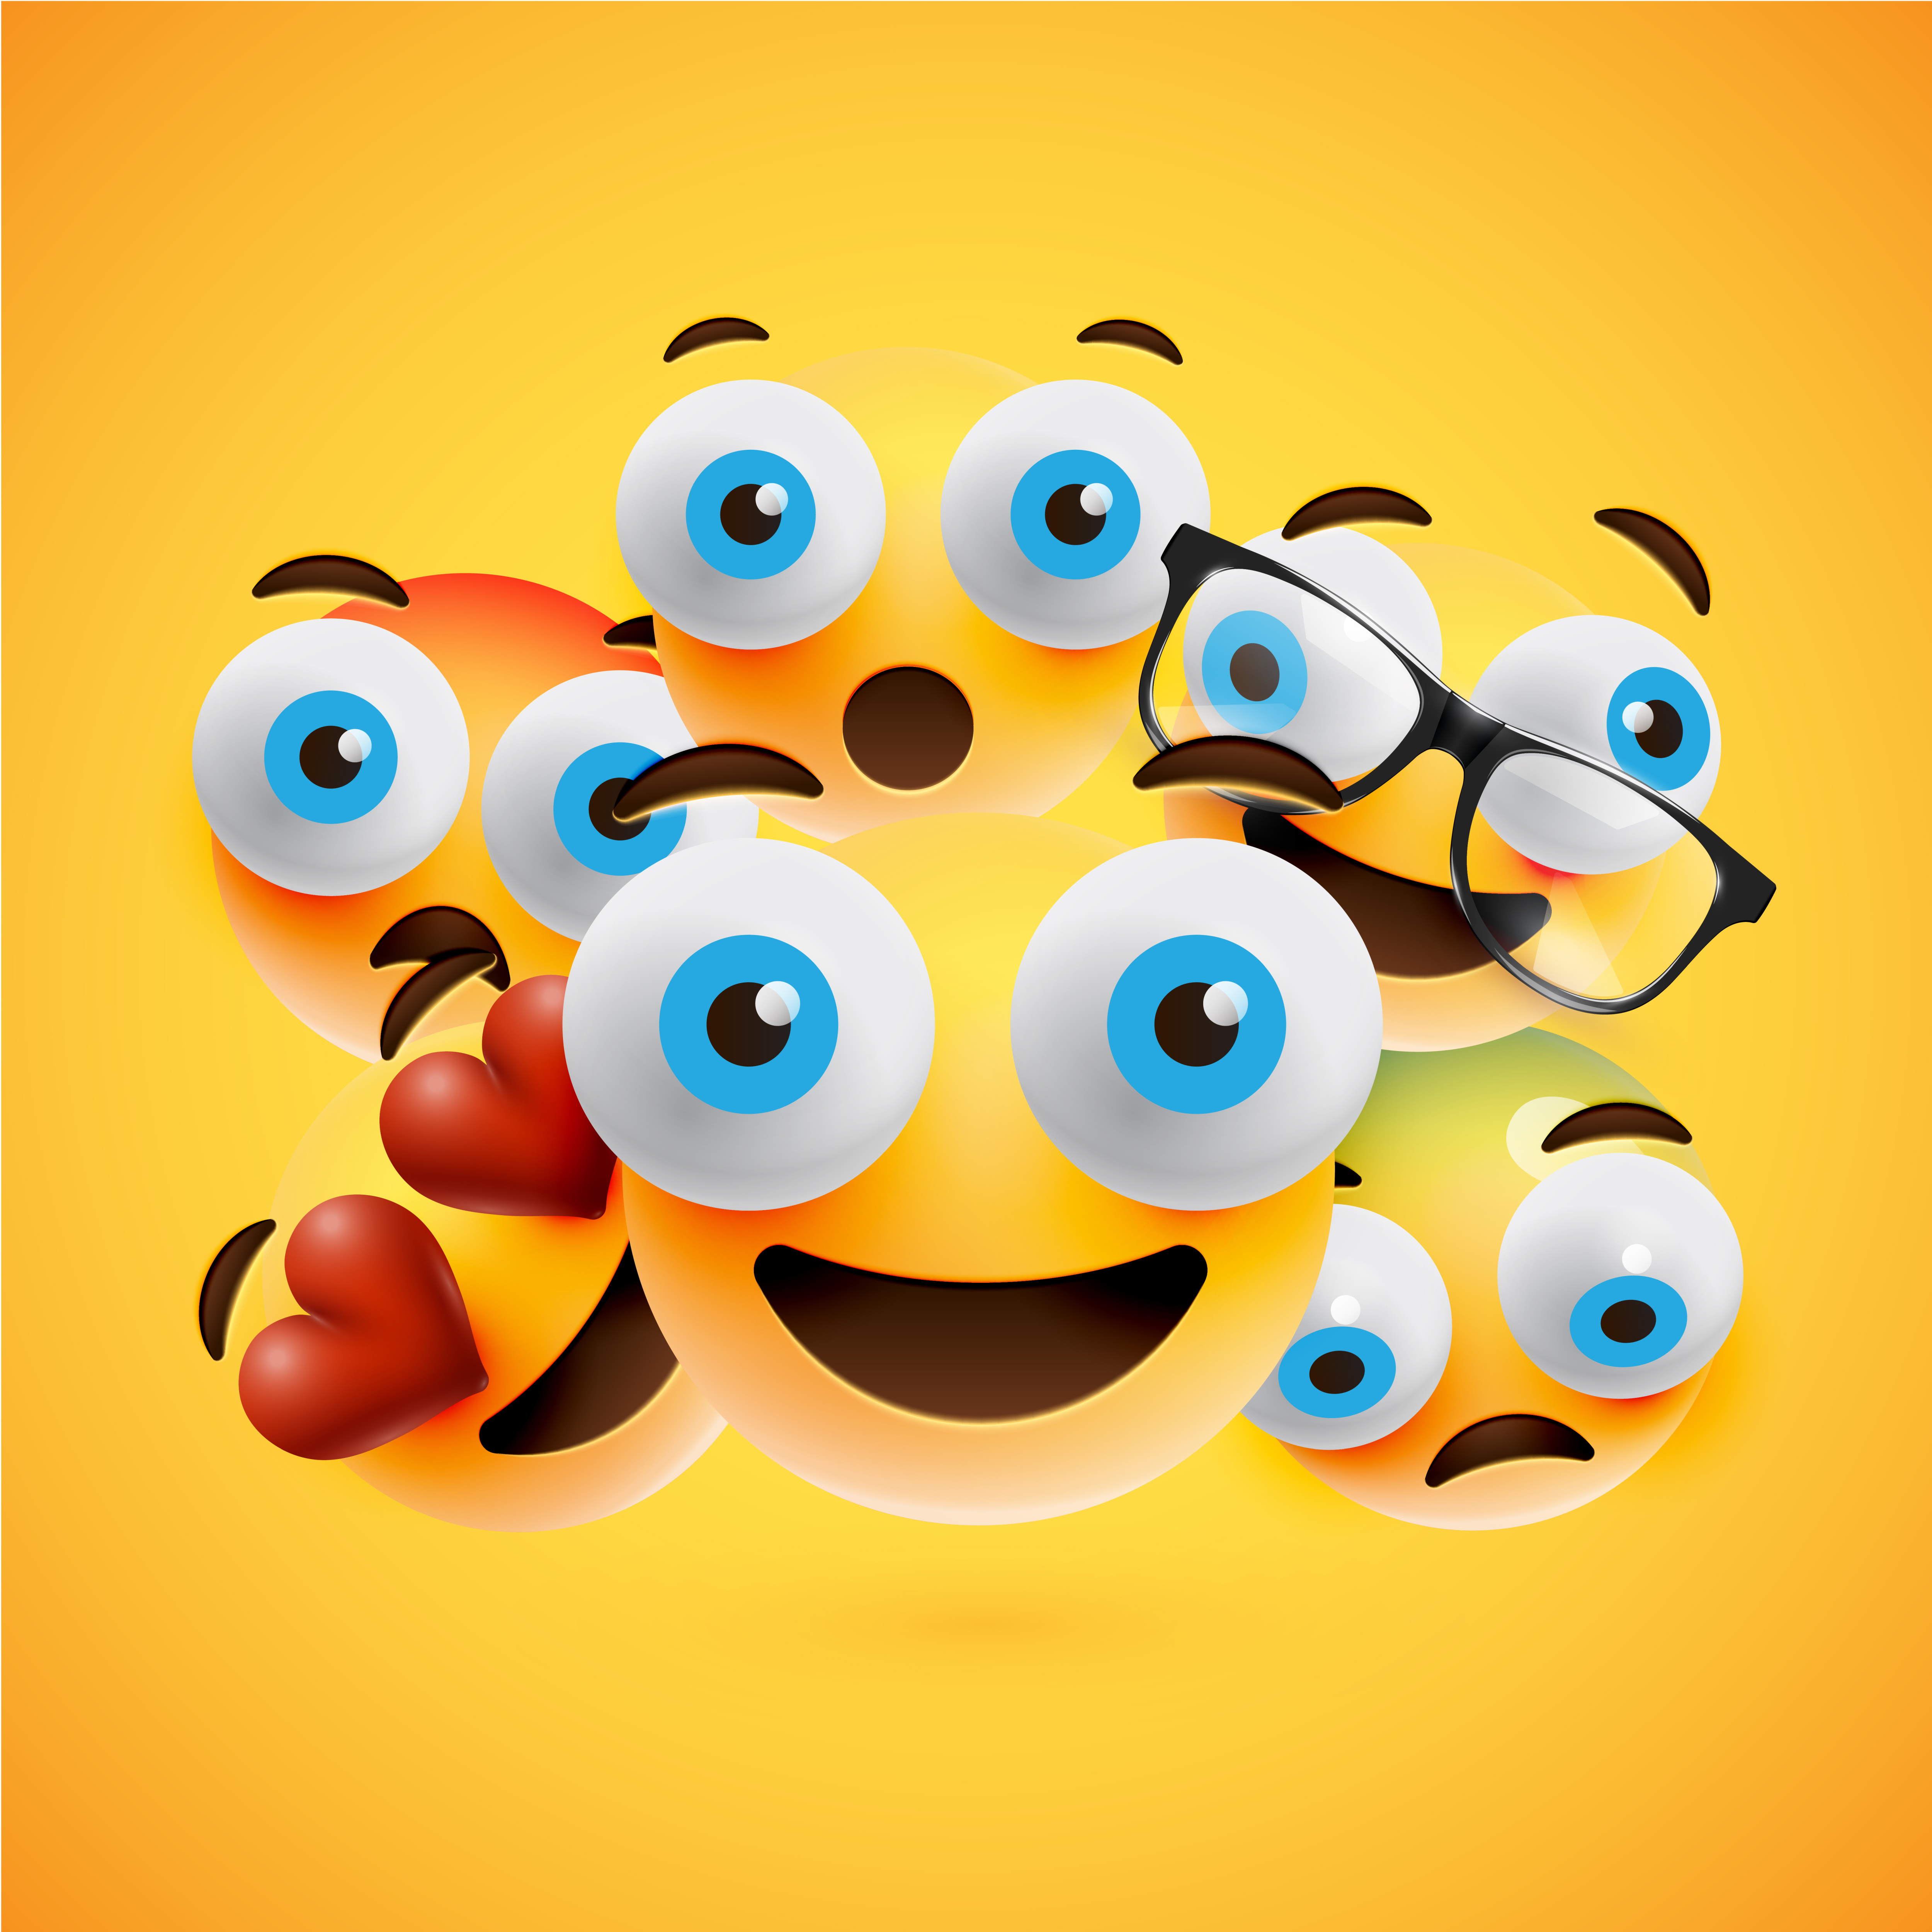 Different yellow smileys on yellow background, vector